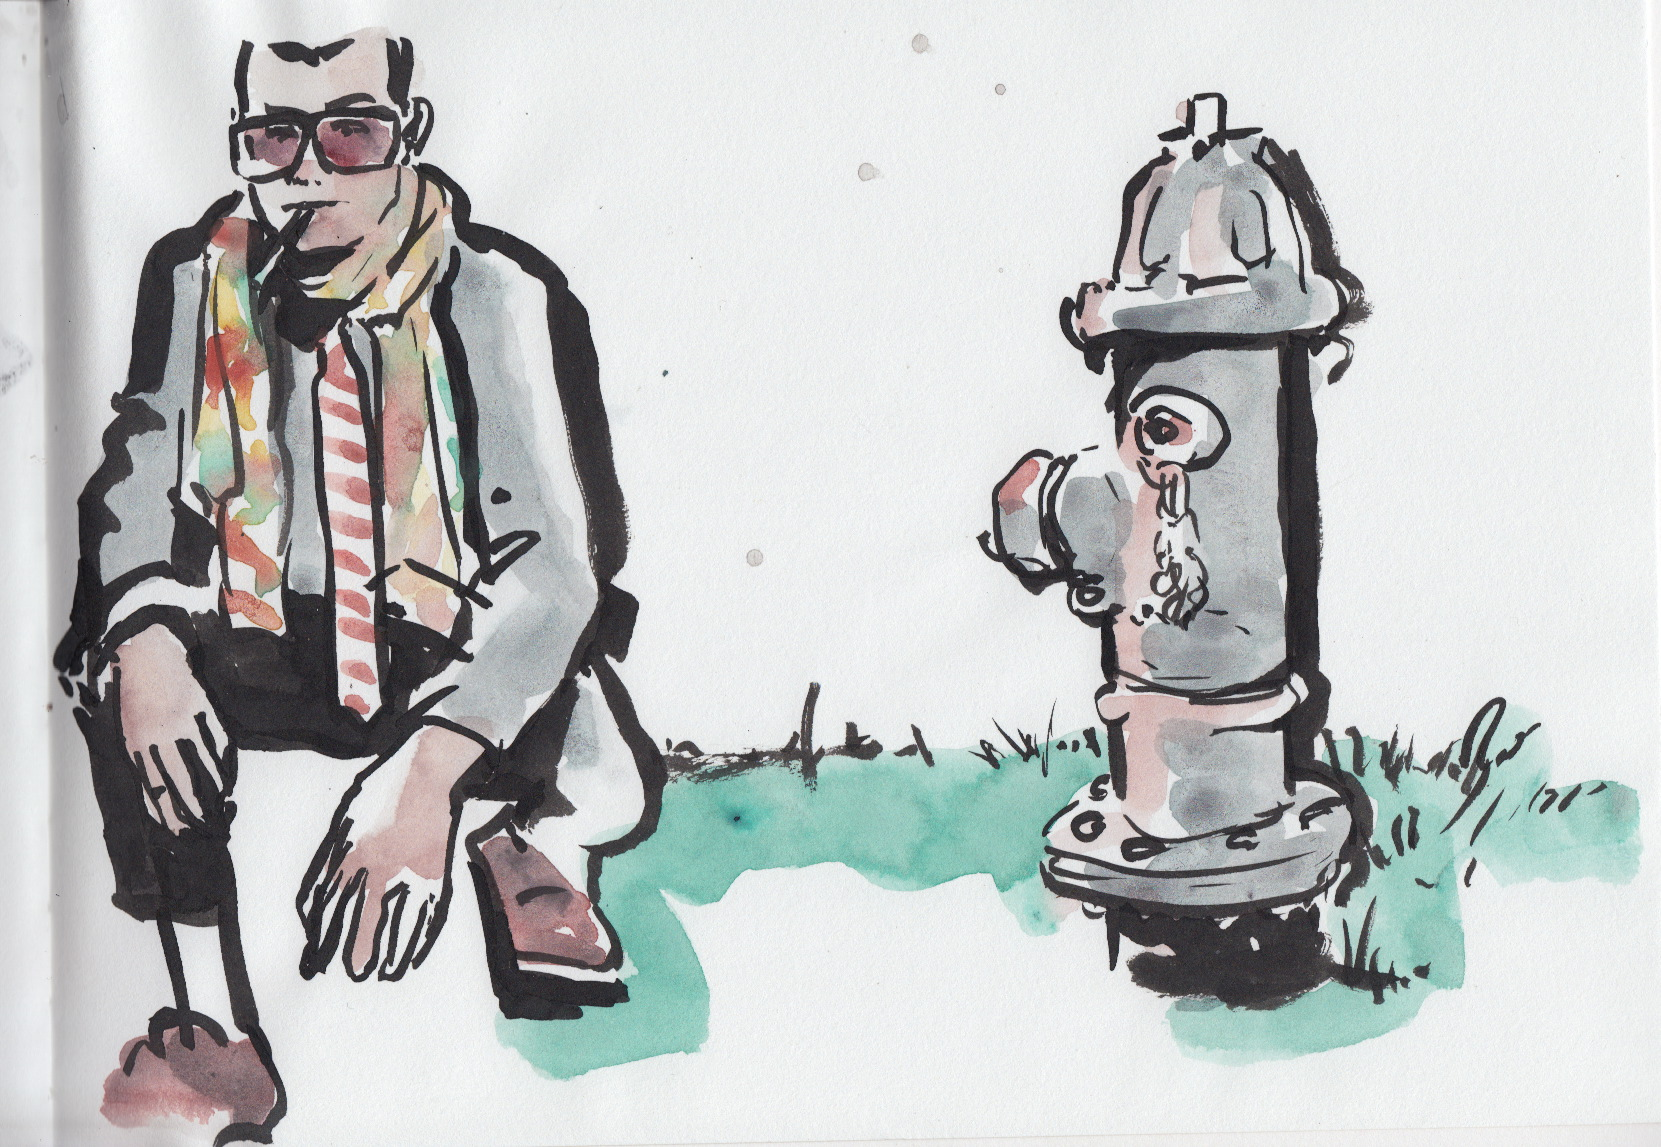 isthismenswear and the Modern Art Museum fire hydrant